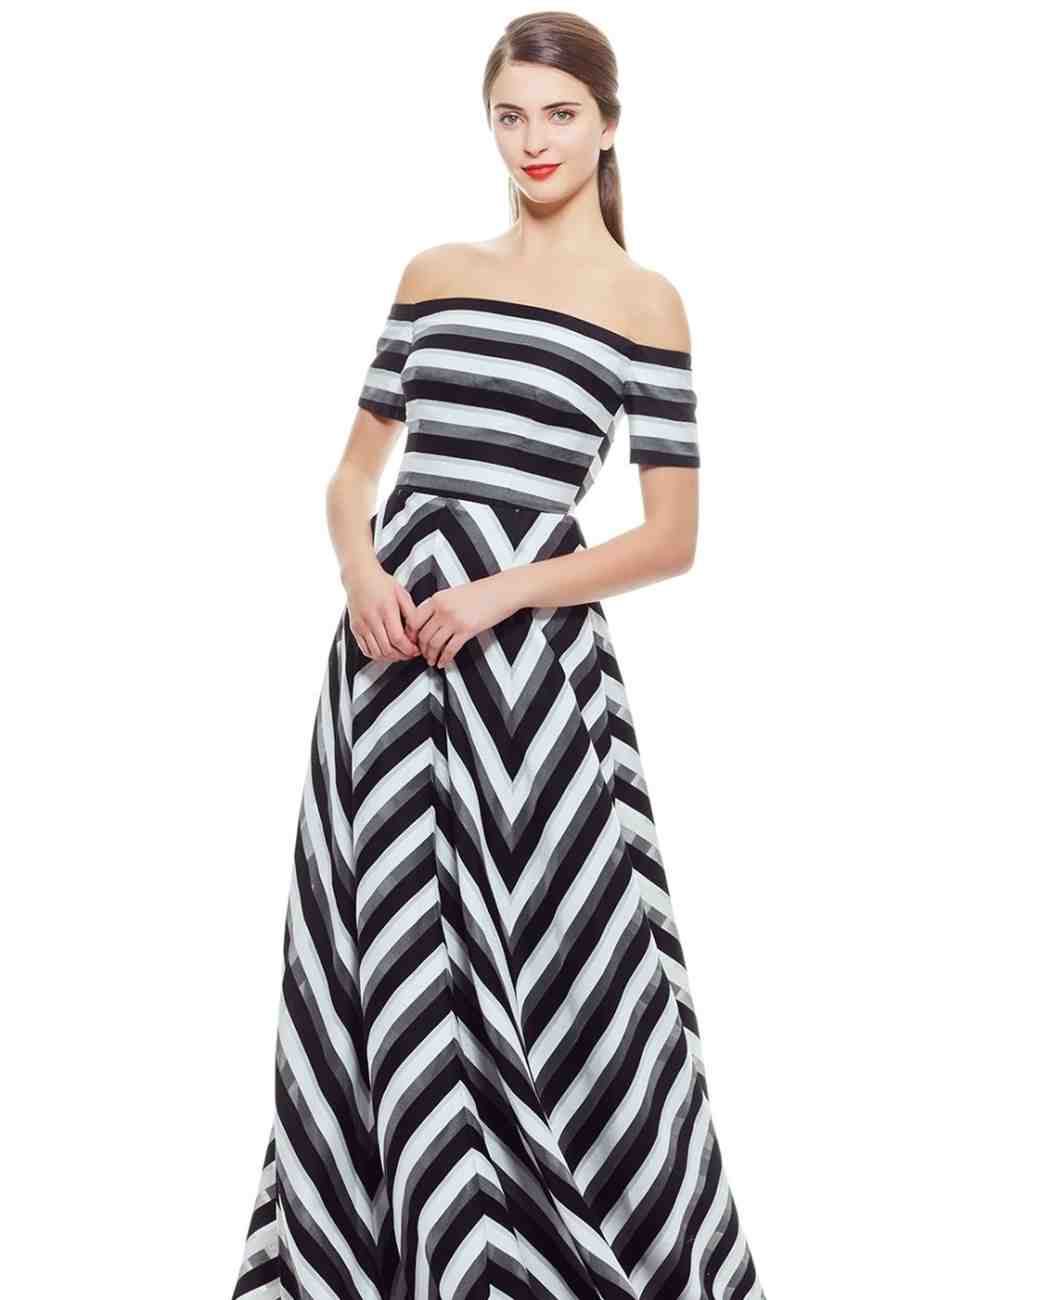 Black and White Lela Rose Mother of the Bride Dress